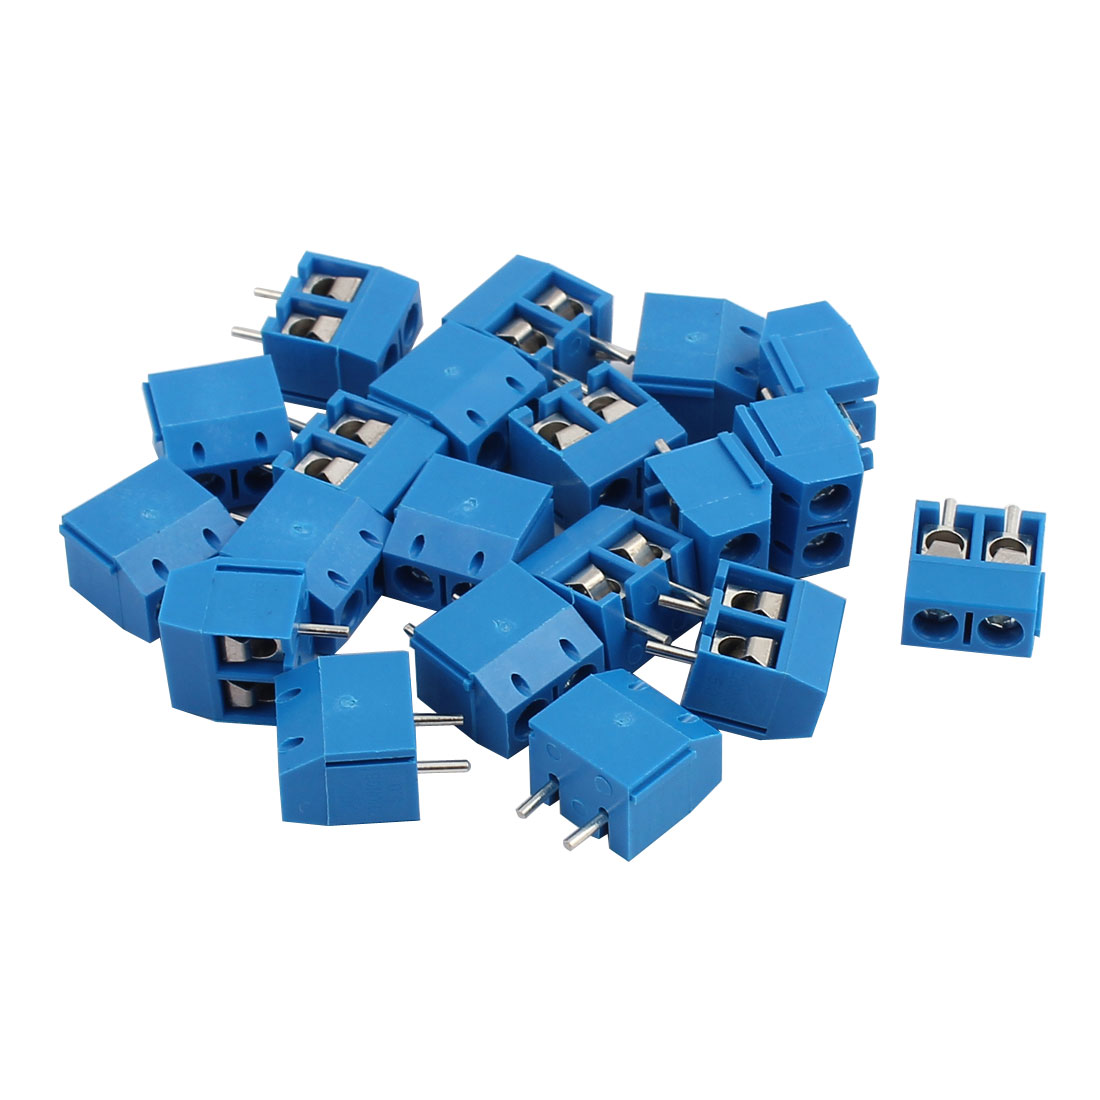 20Pcs ZB-301 AC300V 10A 2P 5mm Pitch Screw PCB Terminal Blocks Connector Blue